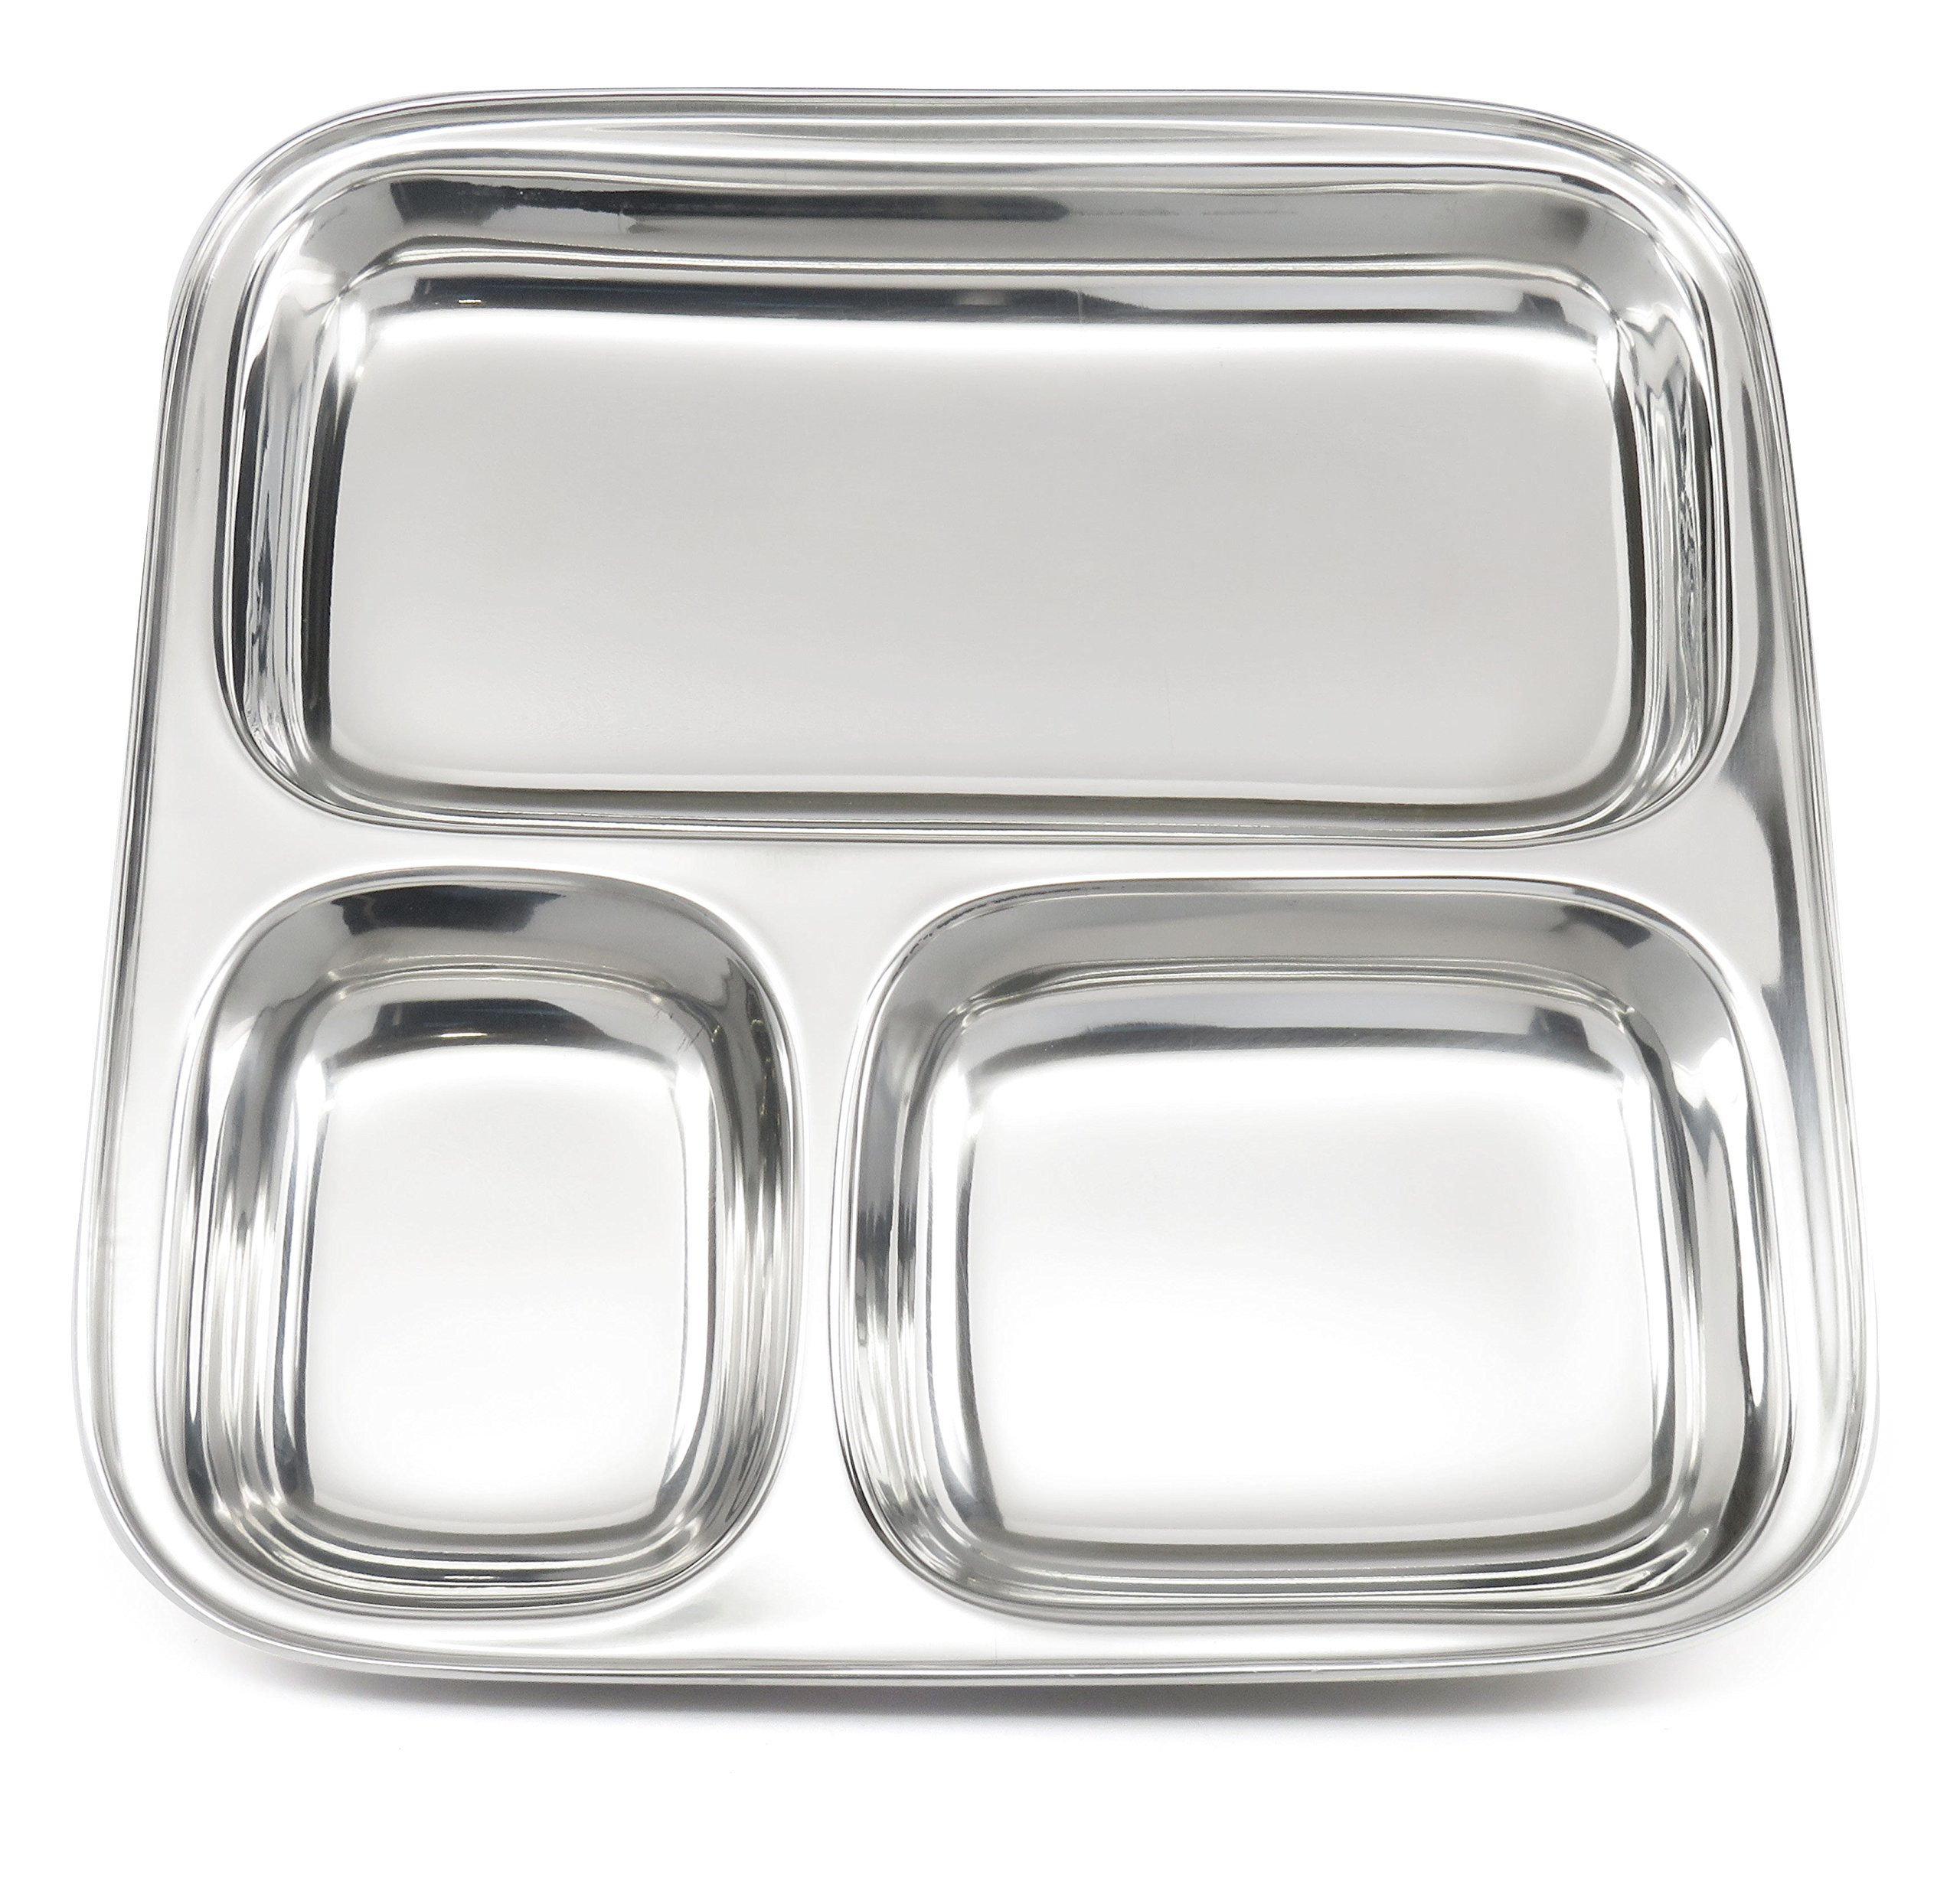 Lifestyle Block Stainless Steel Plastic-Free 3 Compartment Stainless Steel Kid's Plate – Small Divided Kid Plate by Lifestyle Block (Image #2)